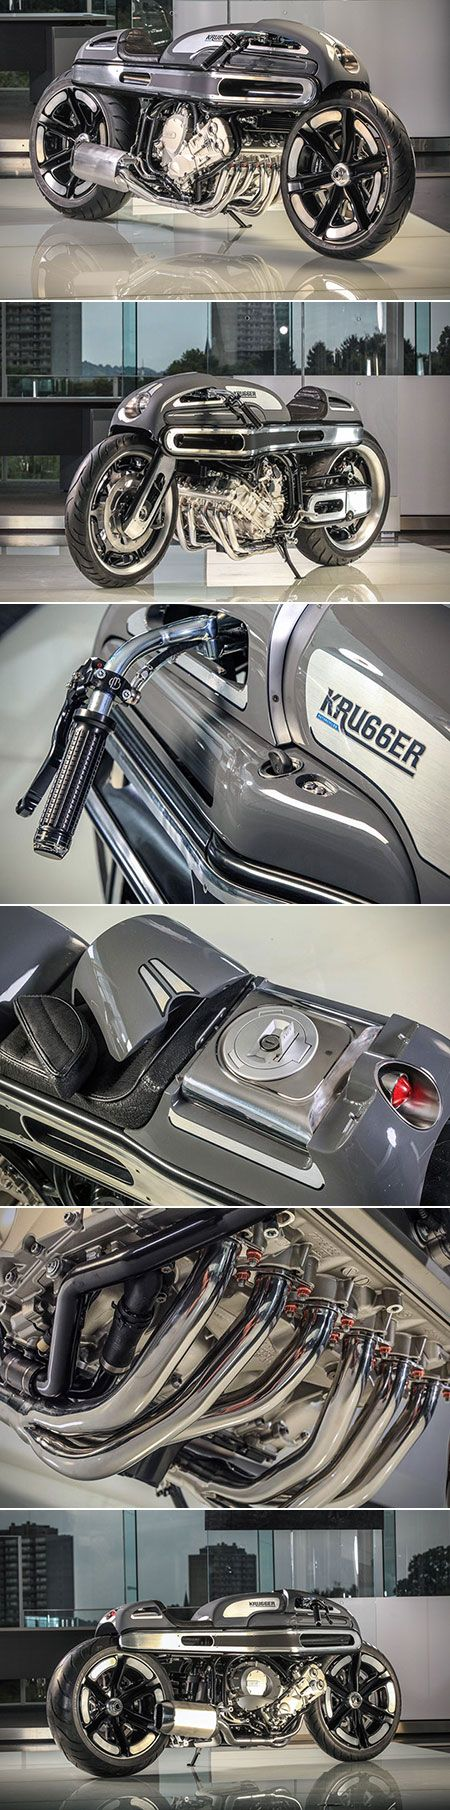 If Robocop Owned a BMW Motorcycle, It Would Be Krugger's Futuristic K1600